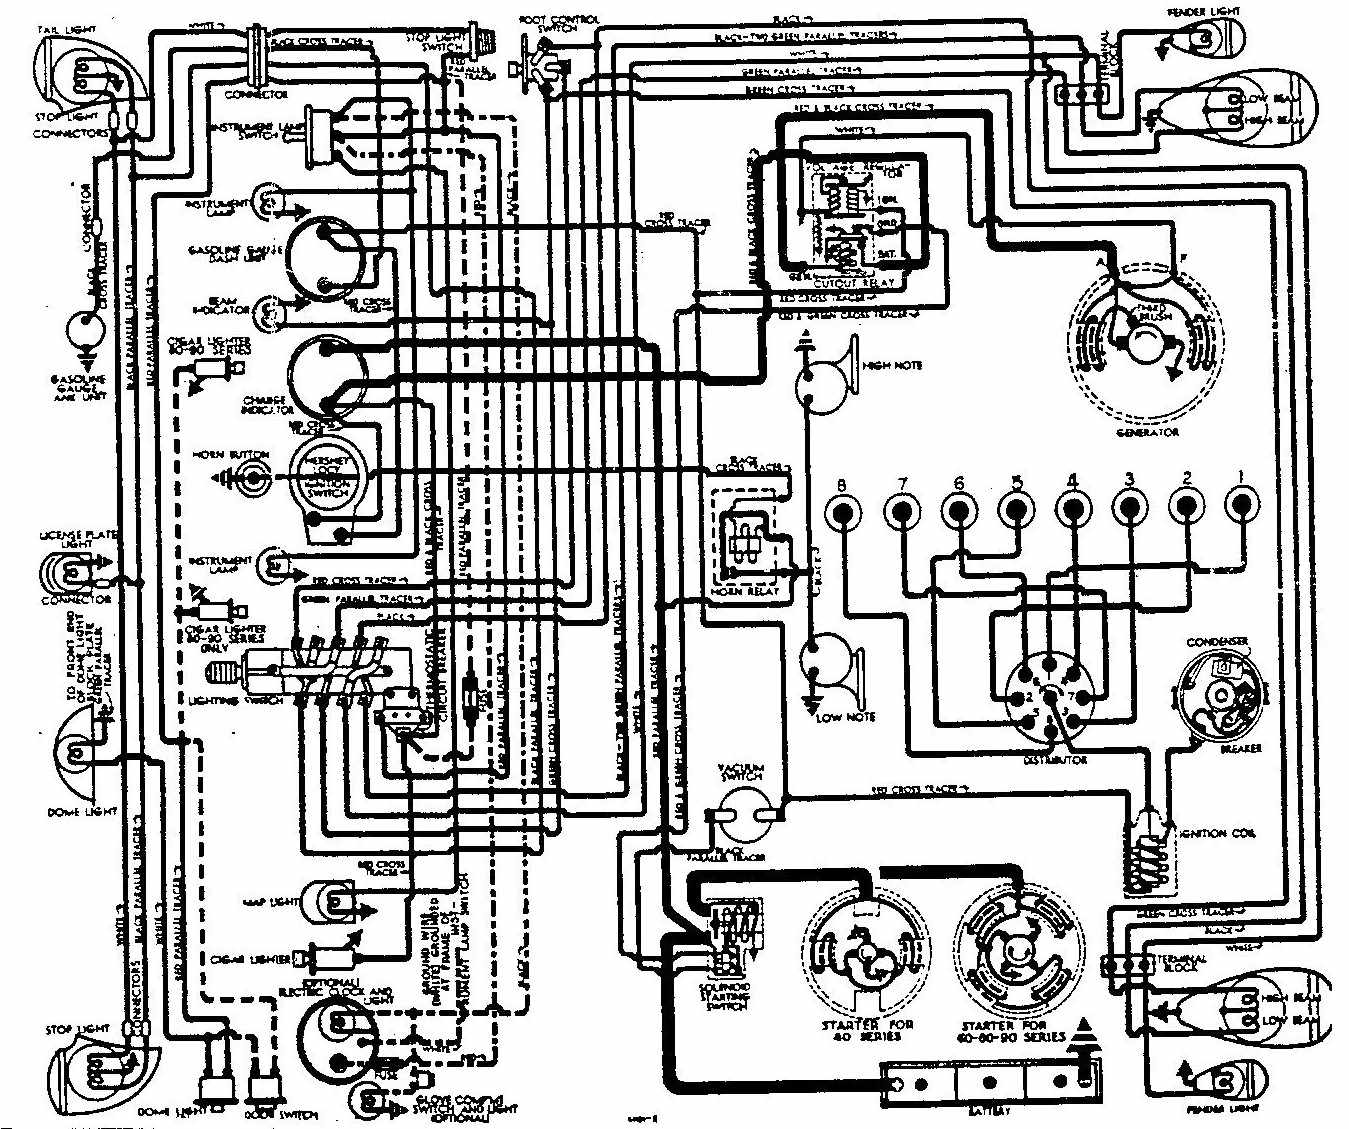 1954 Ford Tractor Wiring Diagram Schematic 1953 Naa 1979 4600 Diagrams Rh Ogmconsulting Co 600